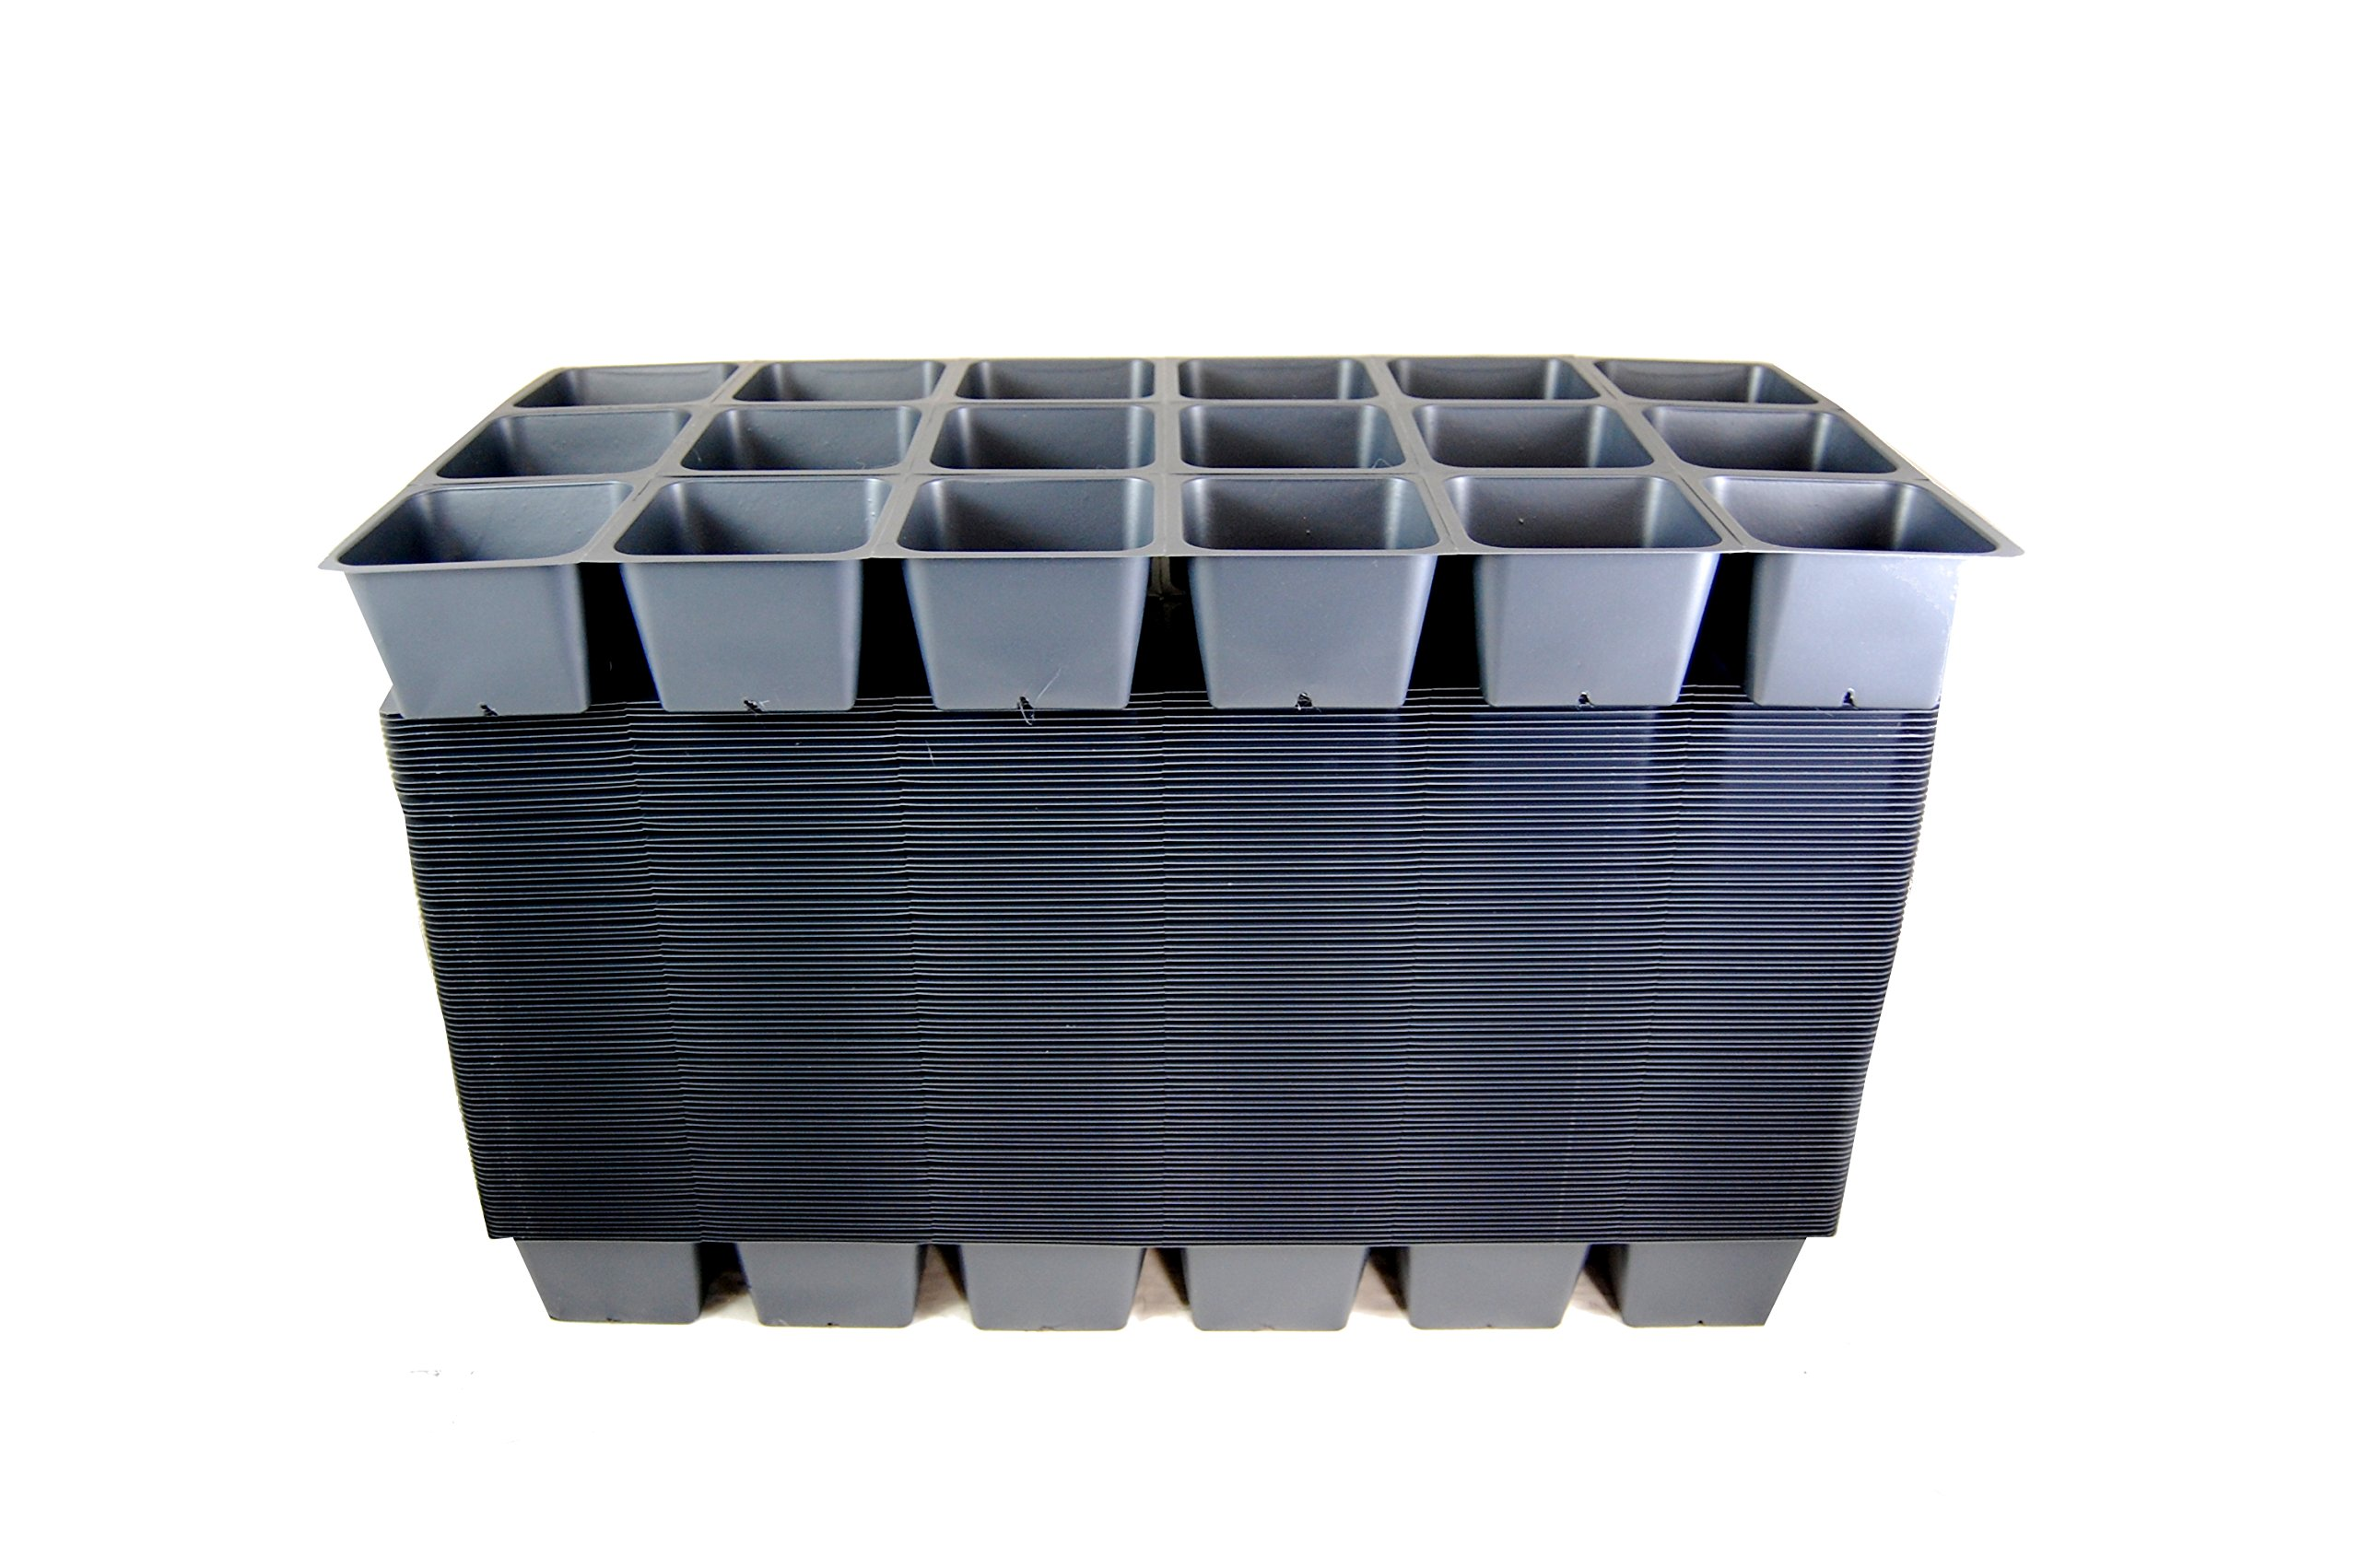 1801 Inserts - 18 Growing Cells per Insert - Propagation Inserts - Case of 100 by Growers Solution